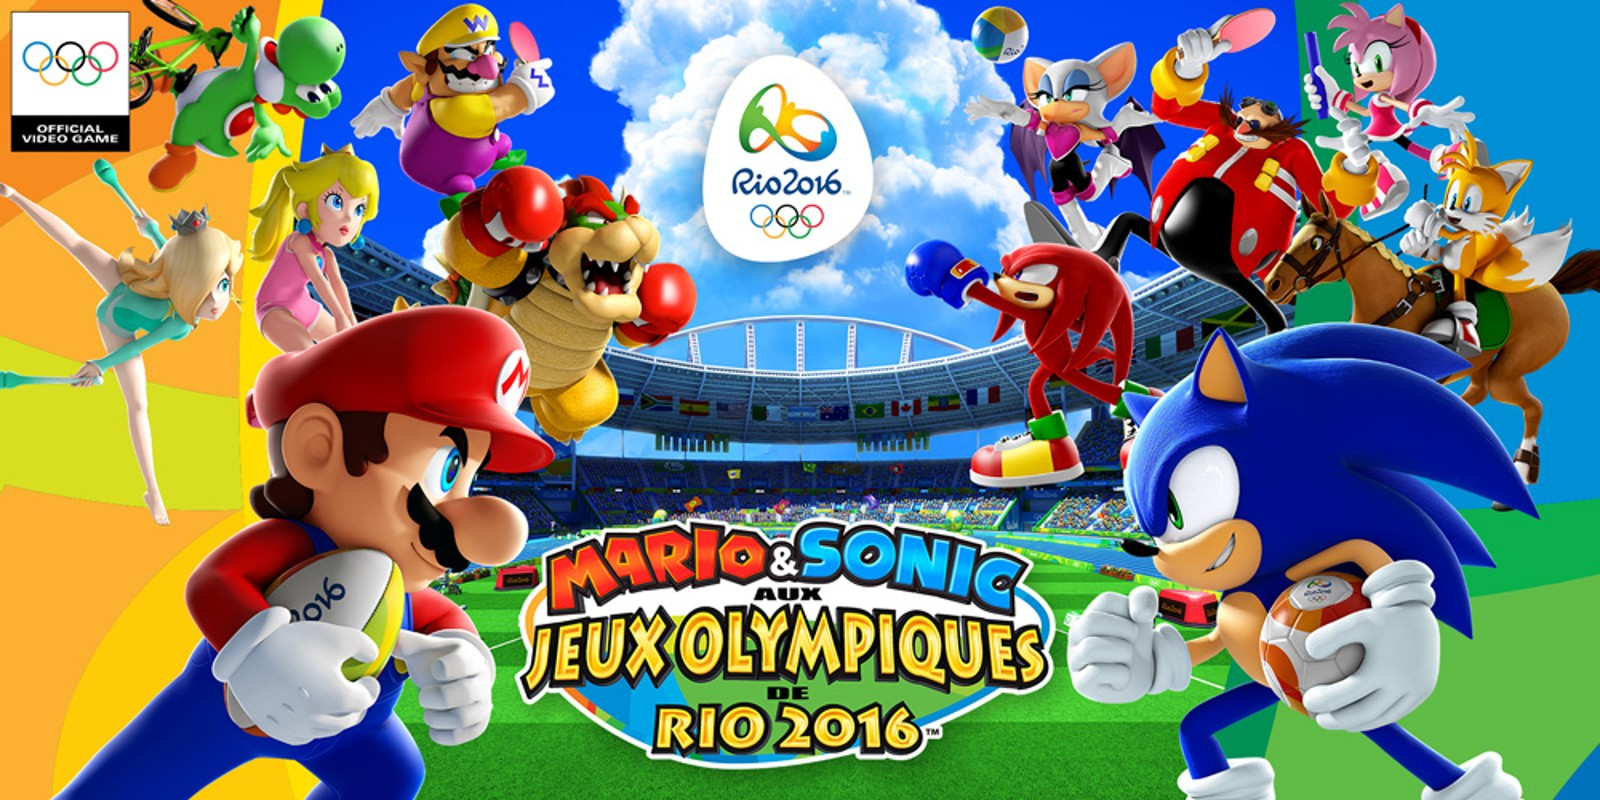 mario sonic aux jeux olympiques de rio 2016 wii u jeux nintendo. Black Bedroom Furniture Sets. Home Design Ideas